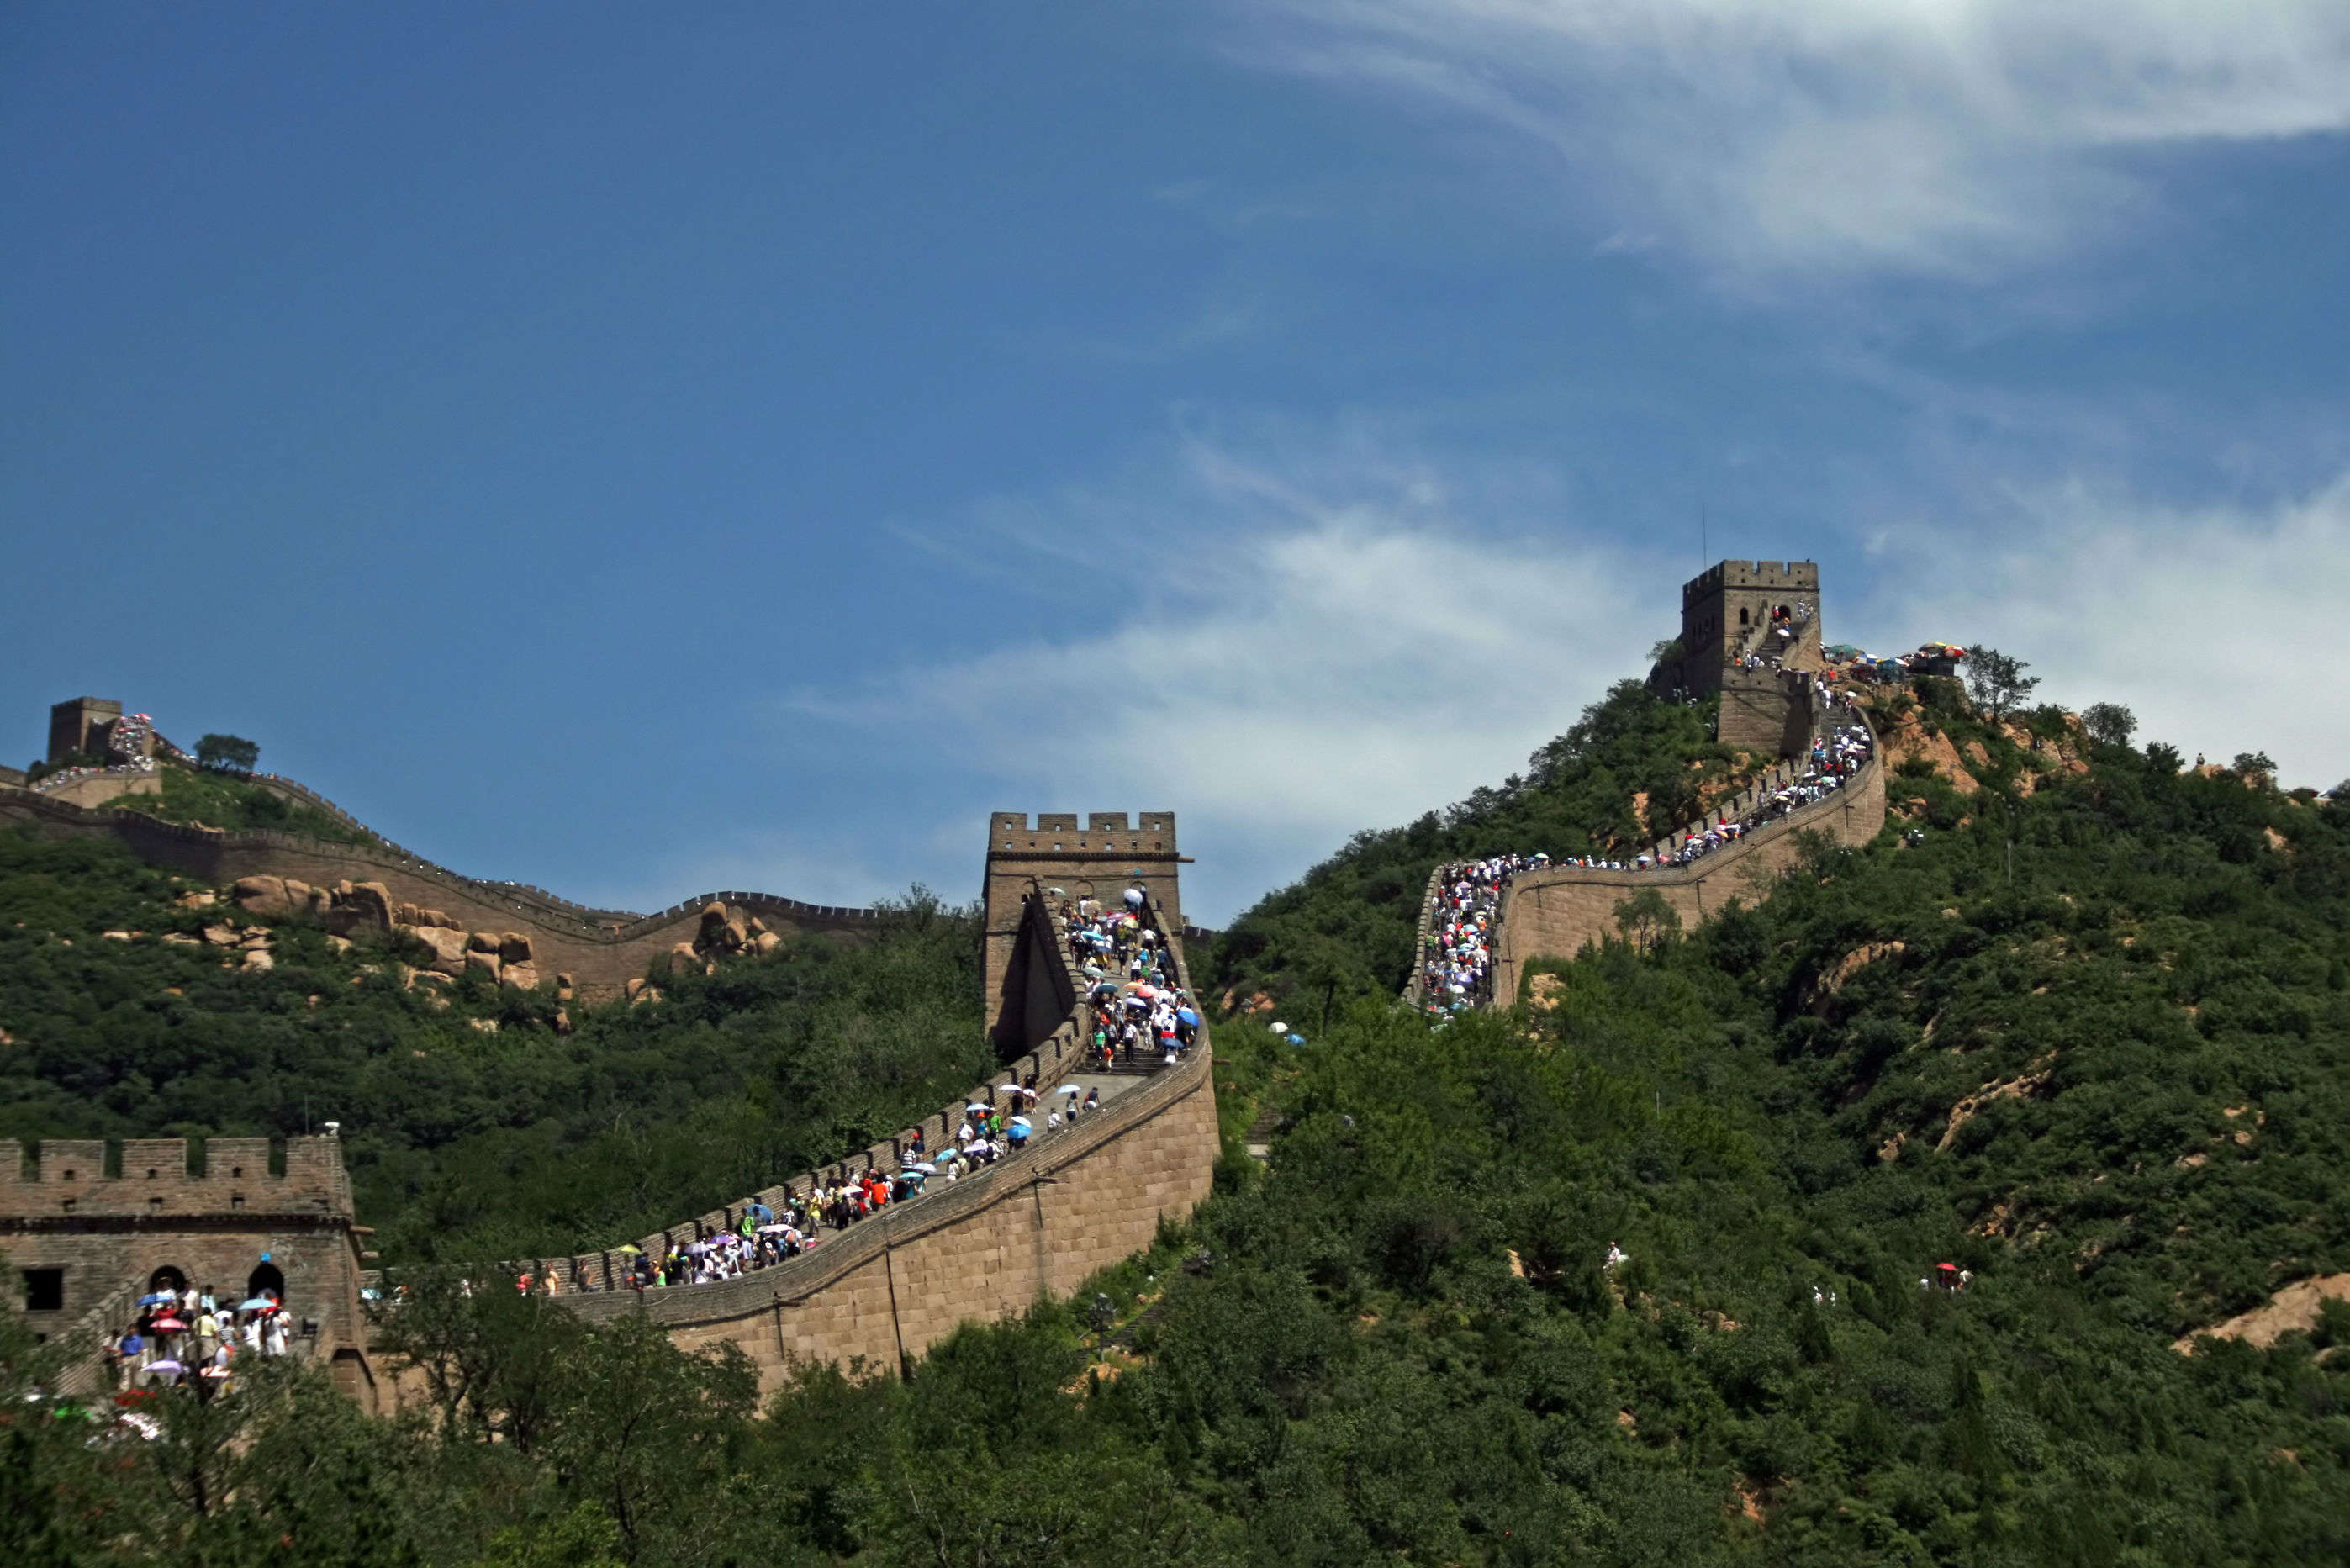 Great Wall of China's most popular section to now have a visitor cap